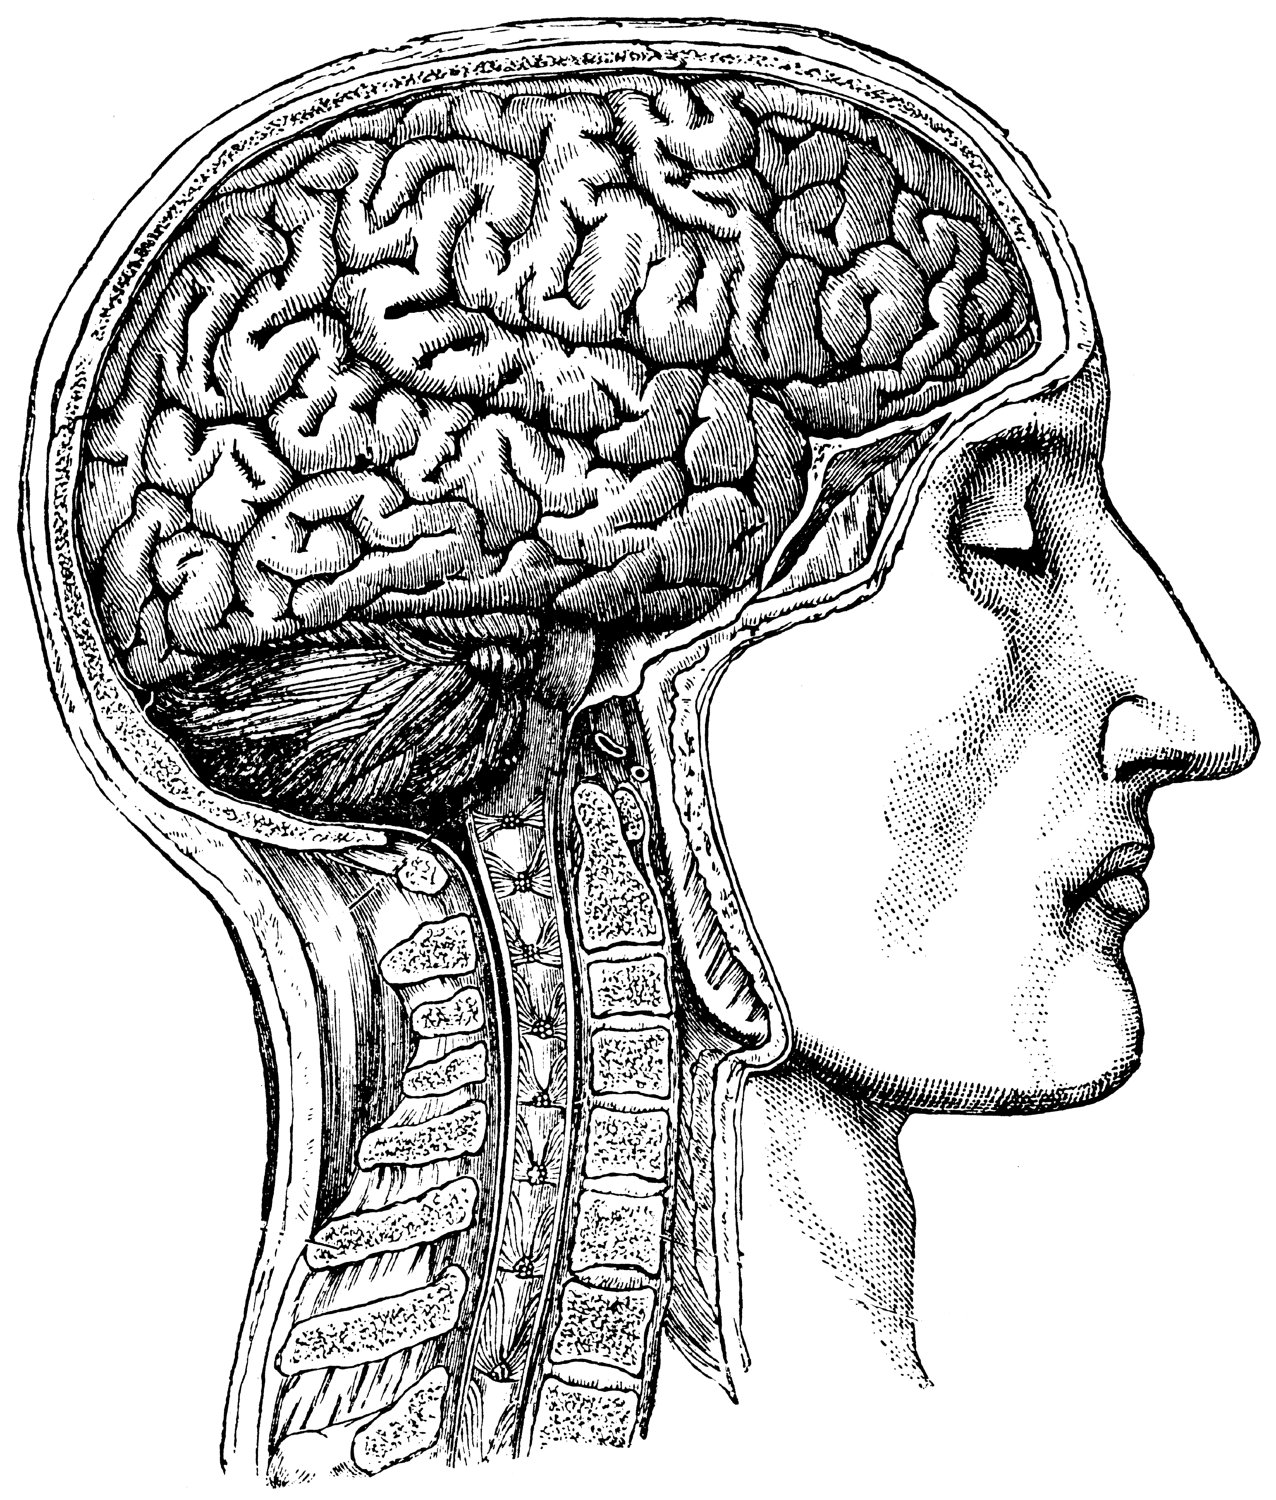 Drawn brains head anatomy 54  Human Anatomical Medical